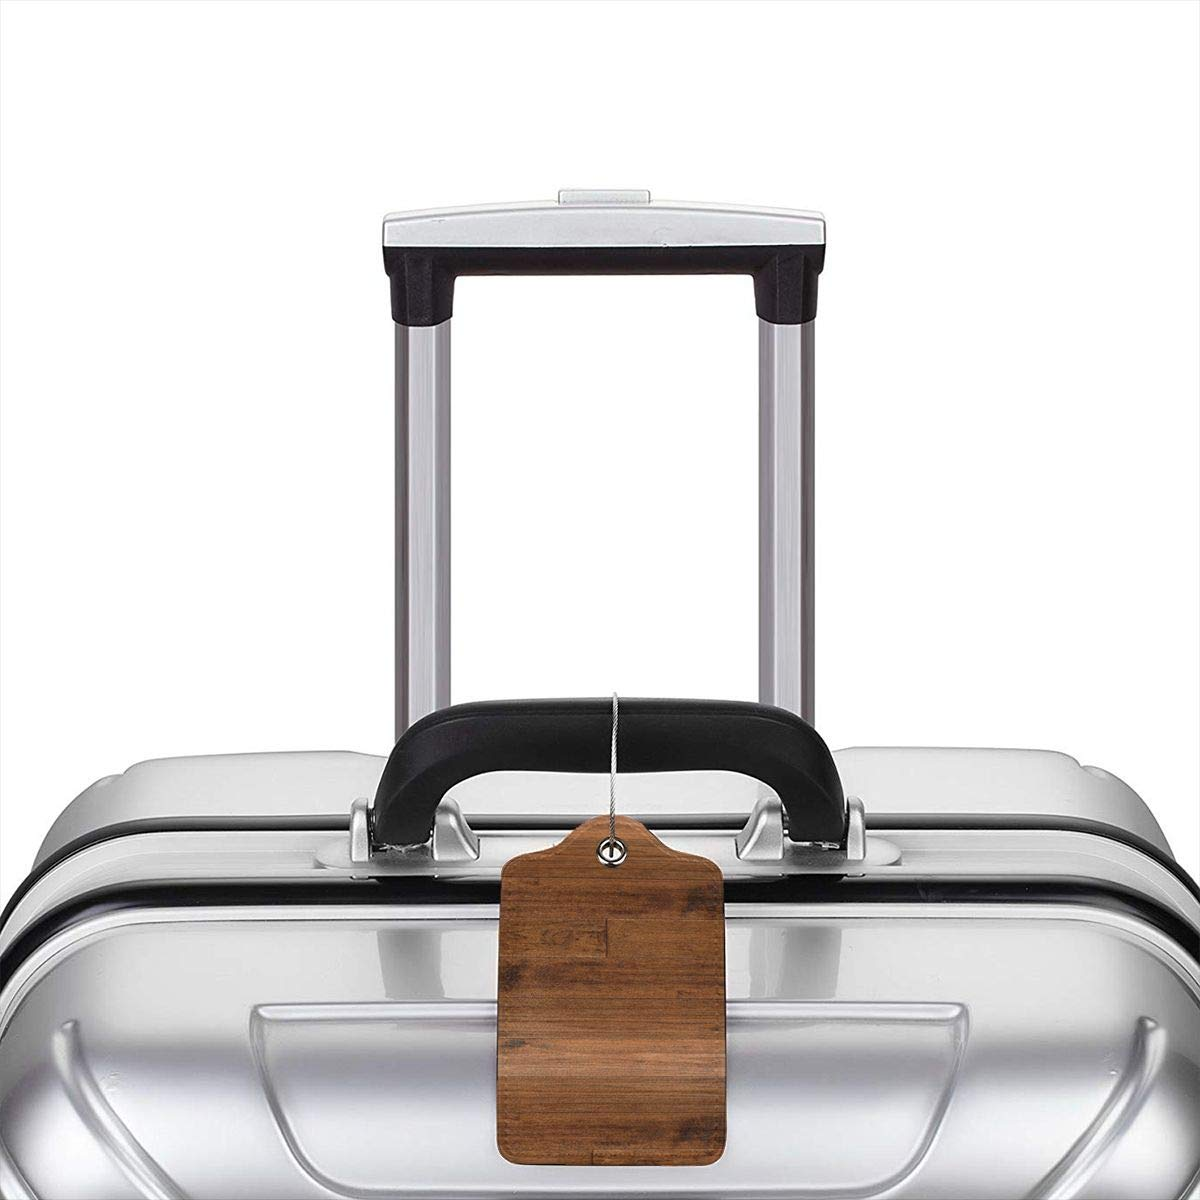 Wood Texture Travel Luggage Tags With Full Privacy Cover Leather Case And Stainless Steel Loop